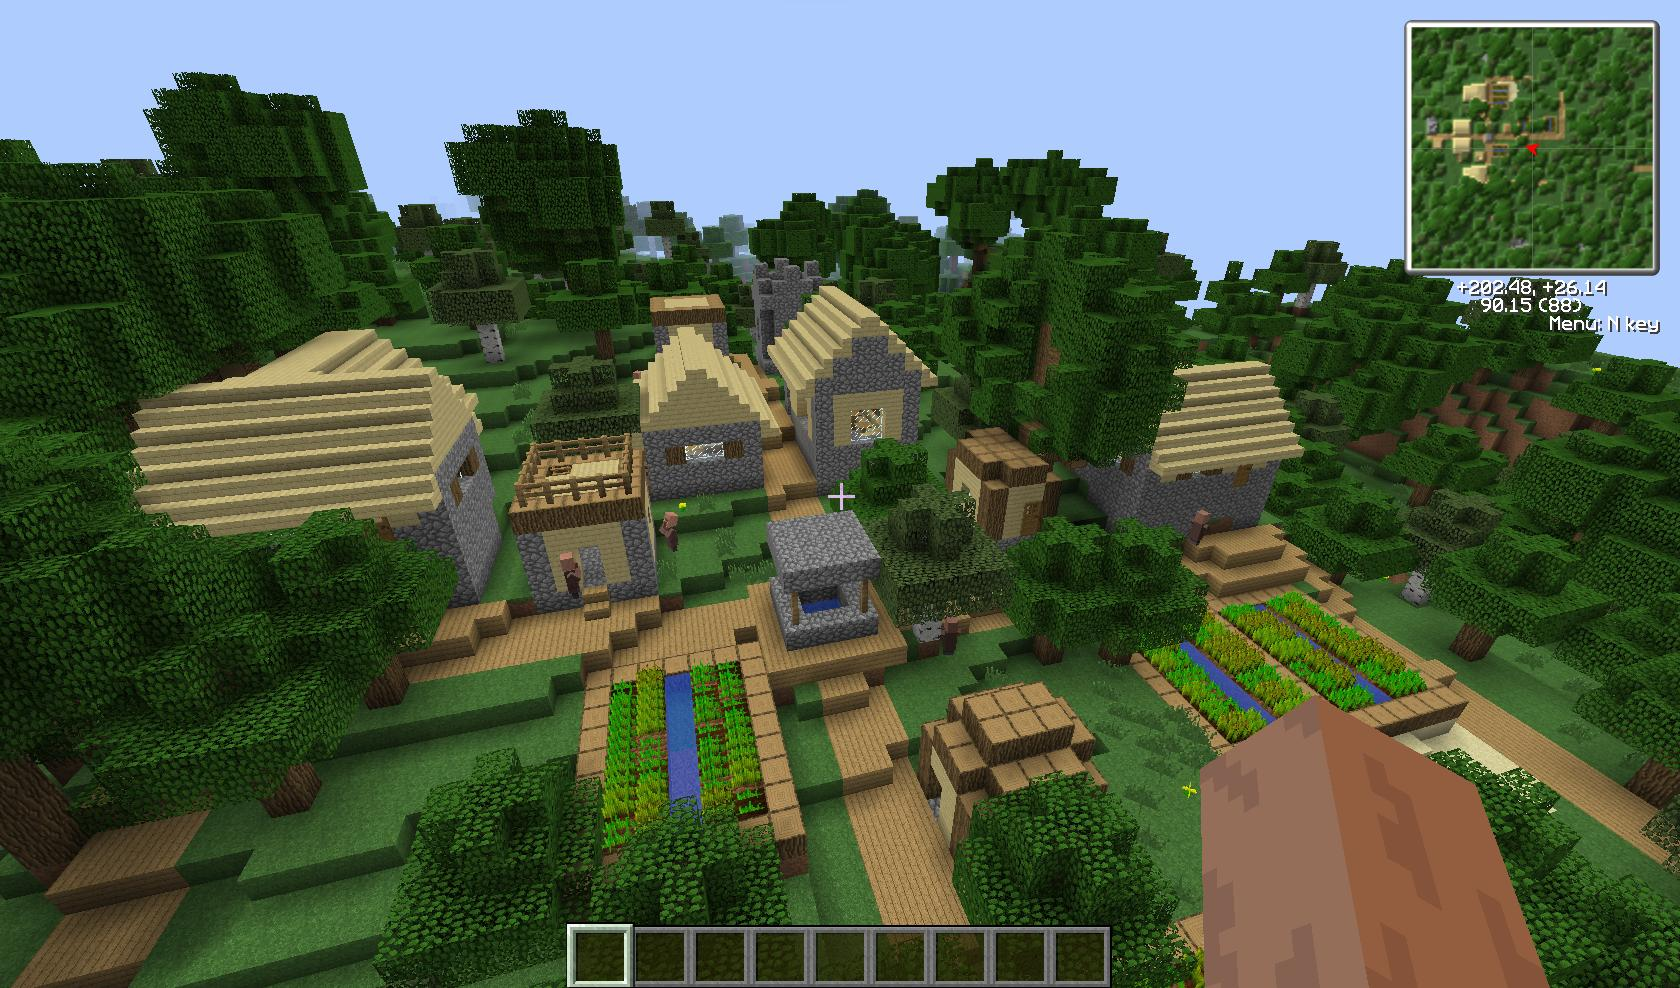 e2b09  More Village Biomes Mod 1 More Village Biomes Screenshots